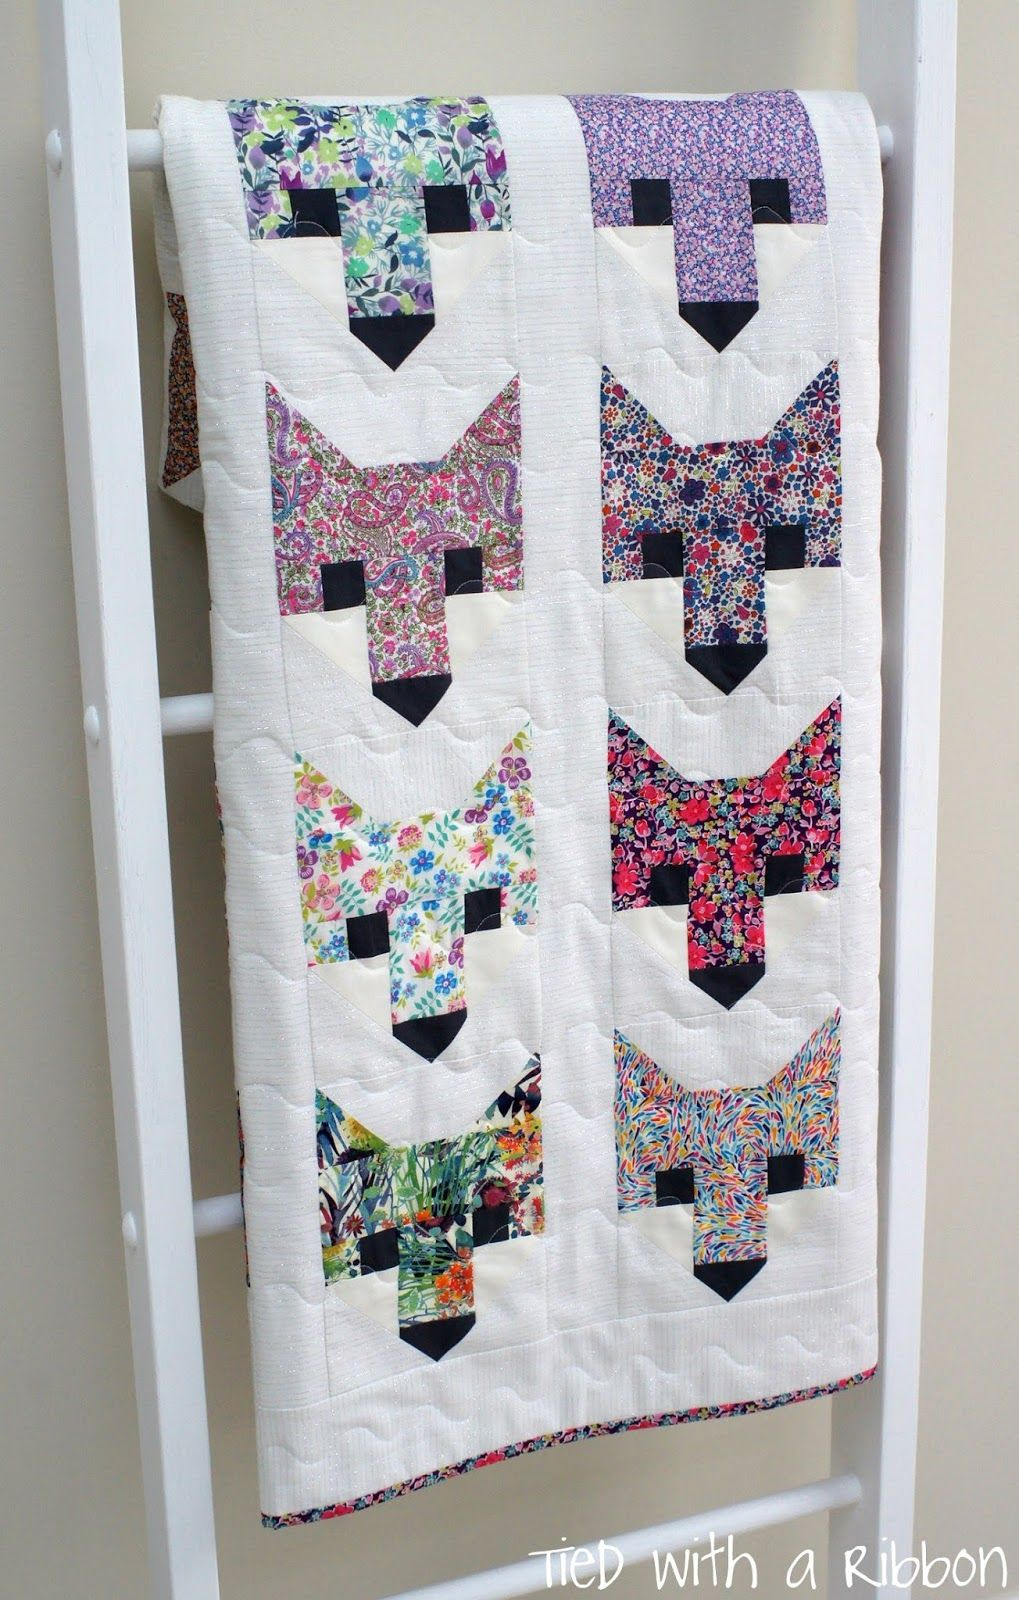 Tied with a Ribbon: F-A-N-C-Y Foxes! | Sewing & embroidery ... : tied quilt patterns - Adamdwight.com